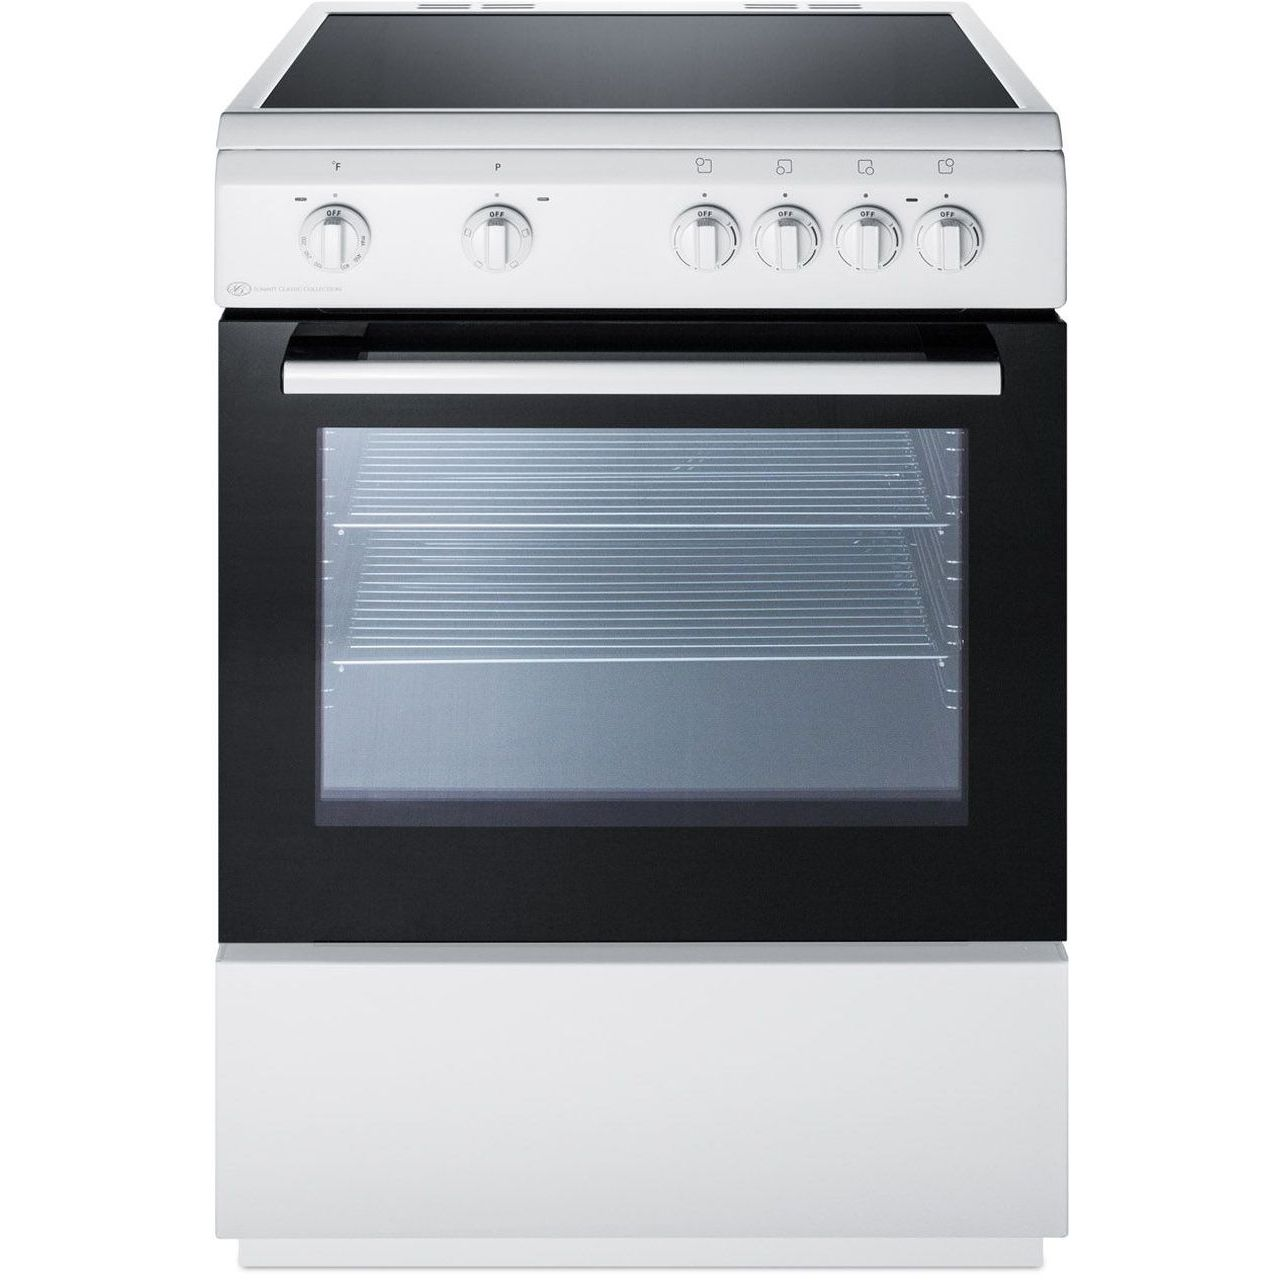 Summit CLRE24WH 24''W Smooth Top Electric Range - White/White/Black